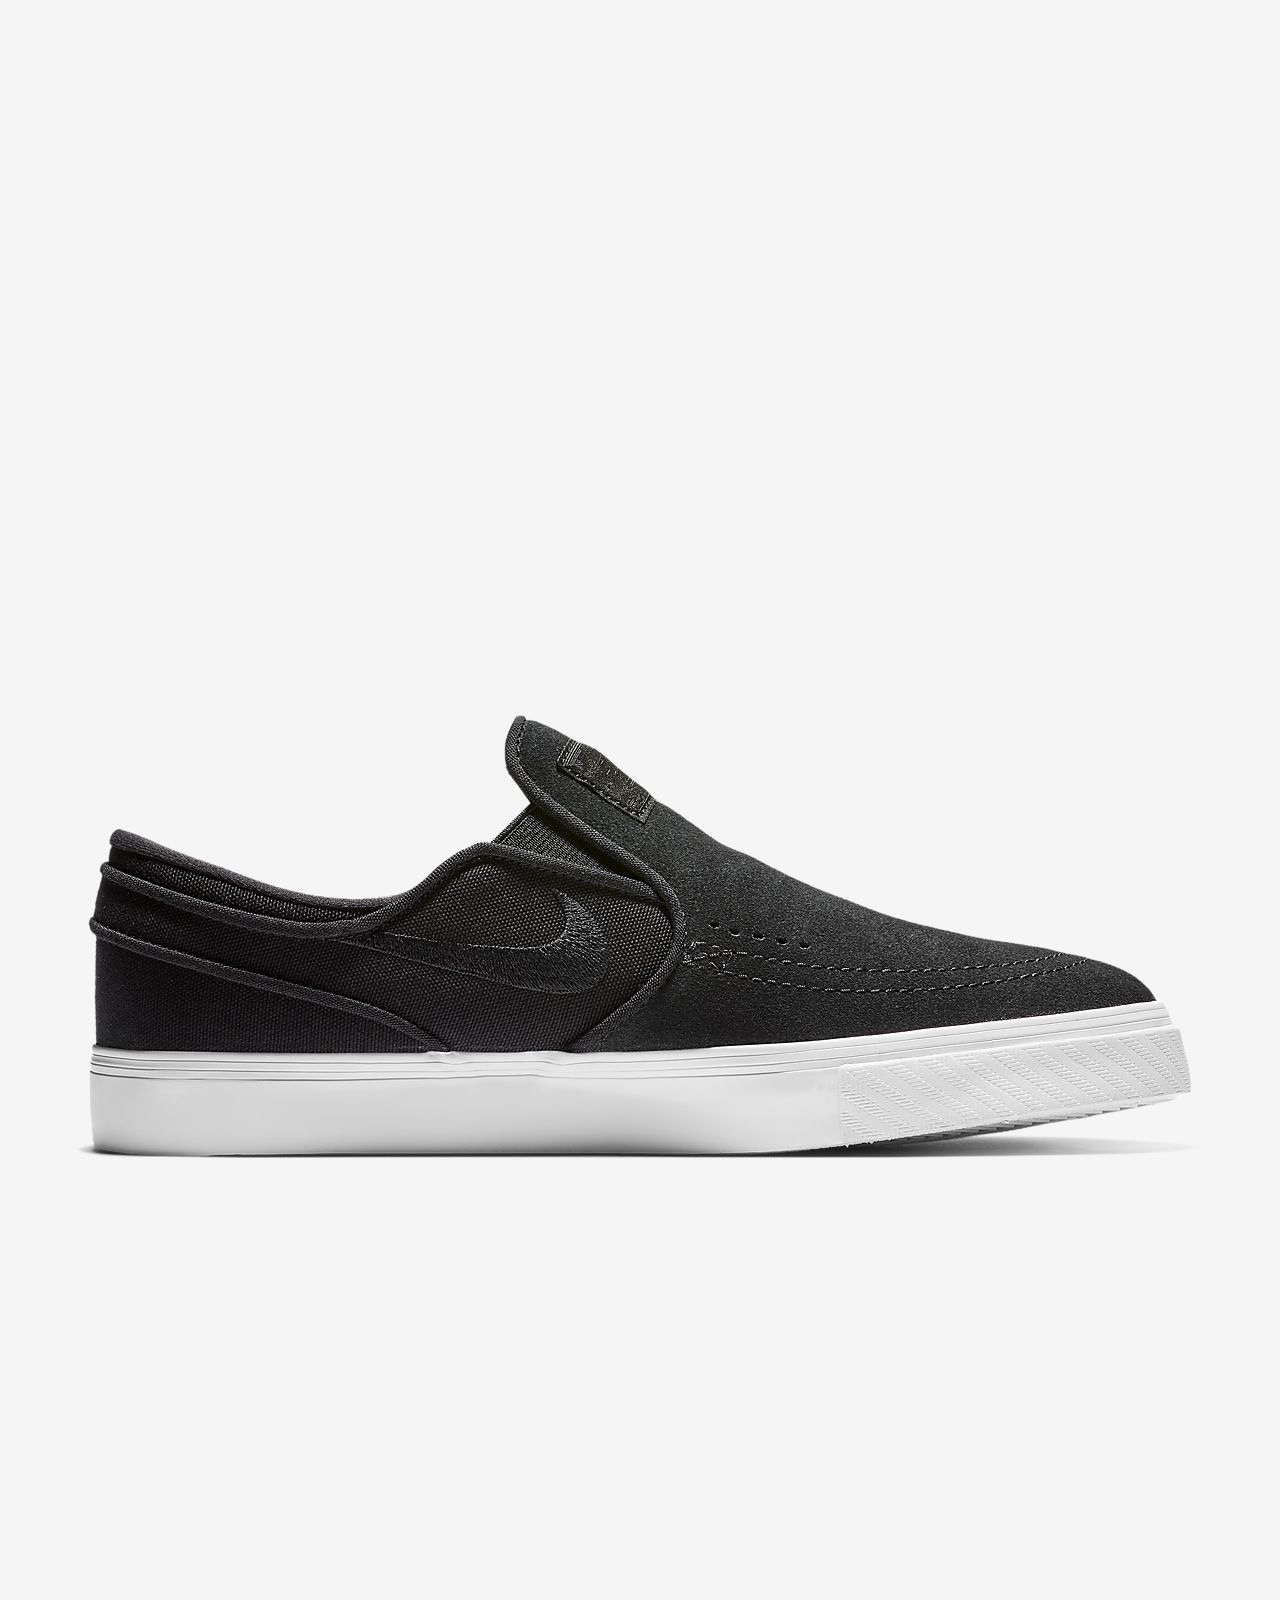 279aff119022 Nike SB Zoom Stefan Janoski Slip-On Men s Skateboarding Shoe. Nike.com